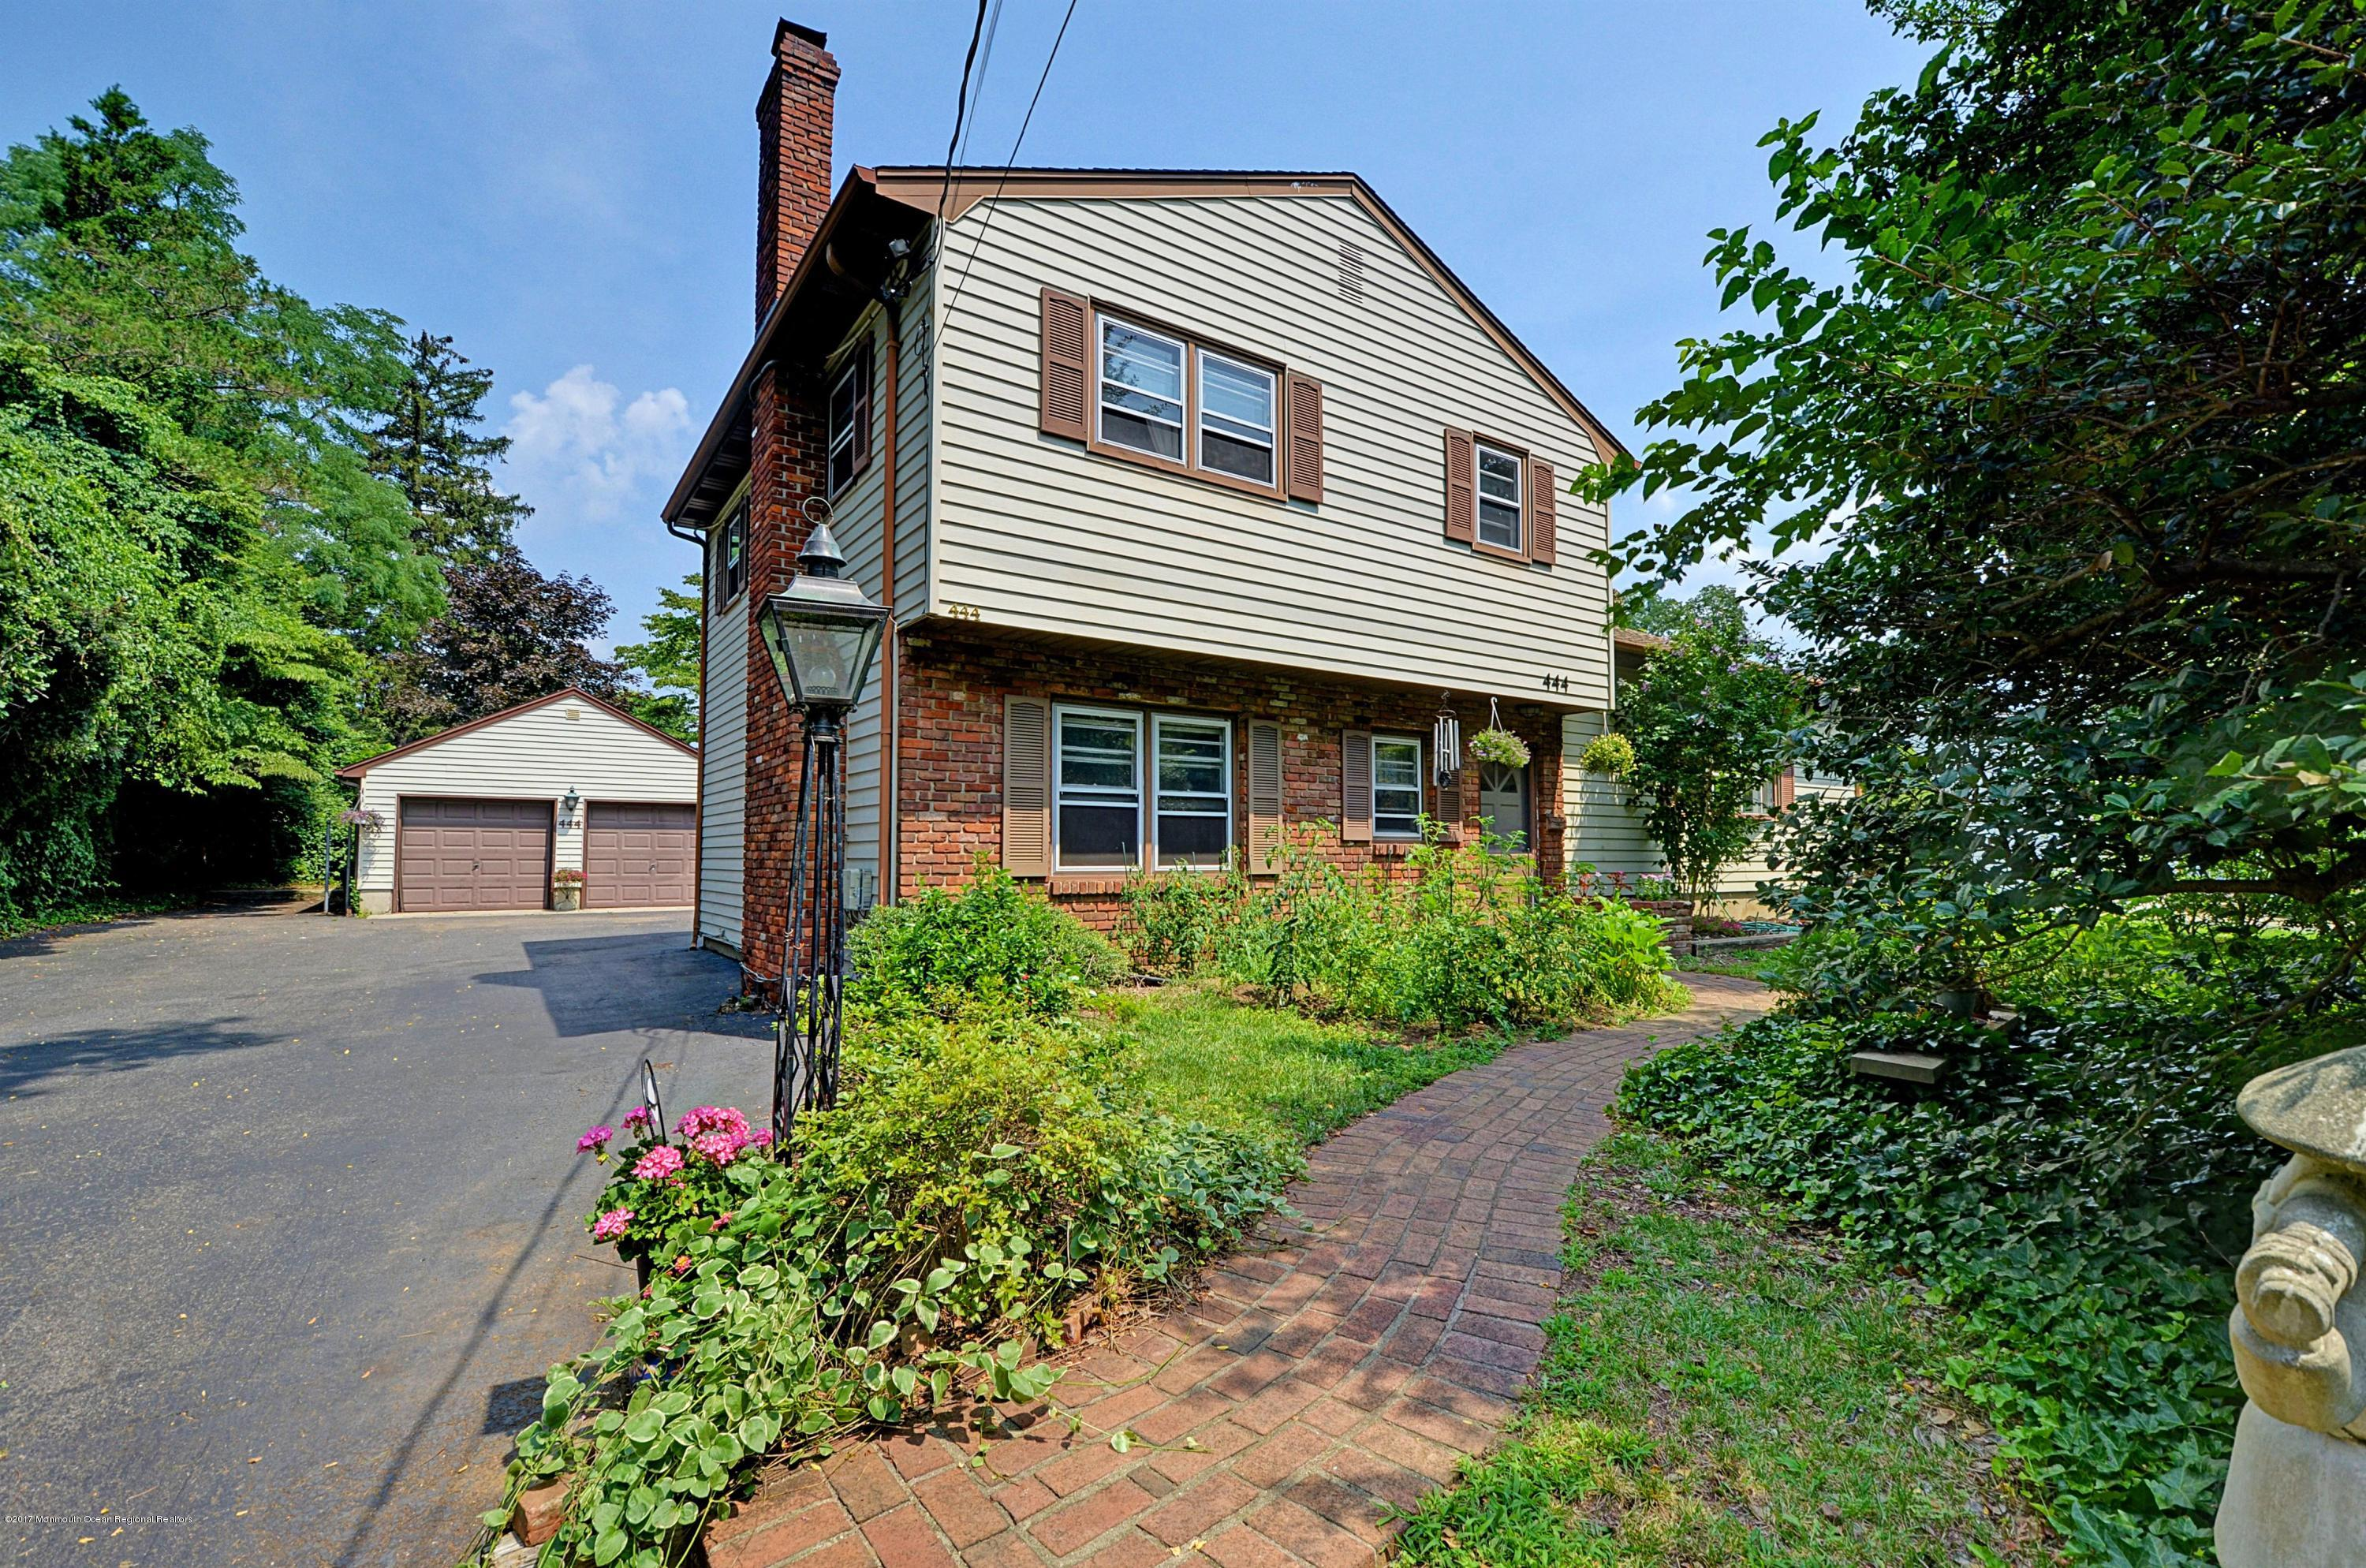 444 W FRONT STREET, RED BANK, NJ 07701